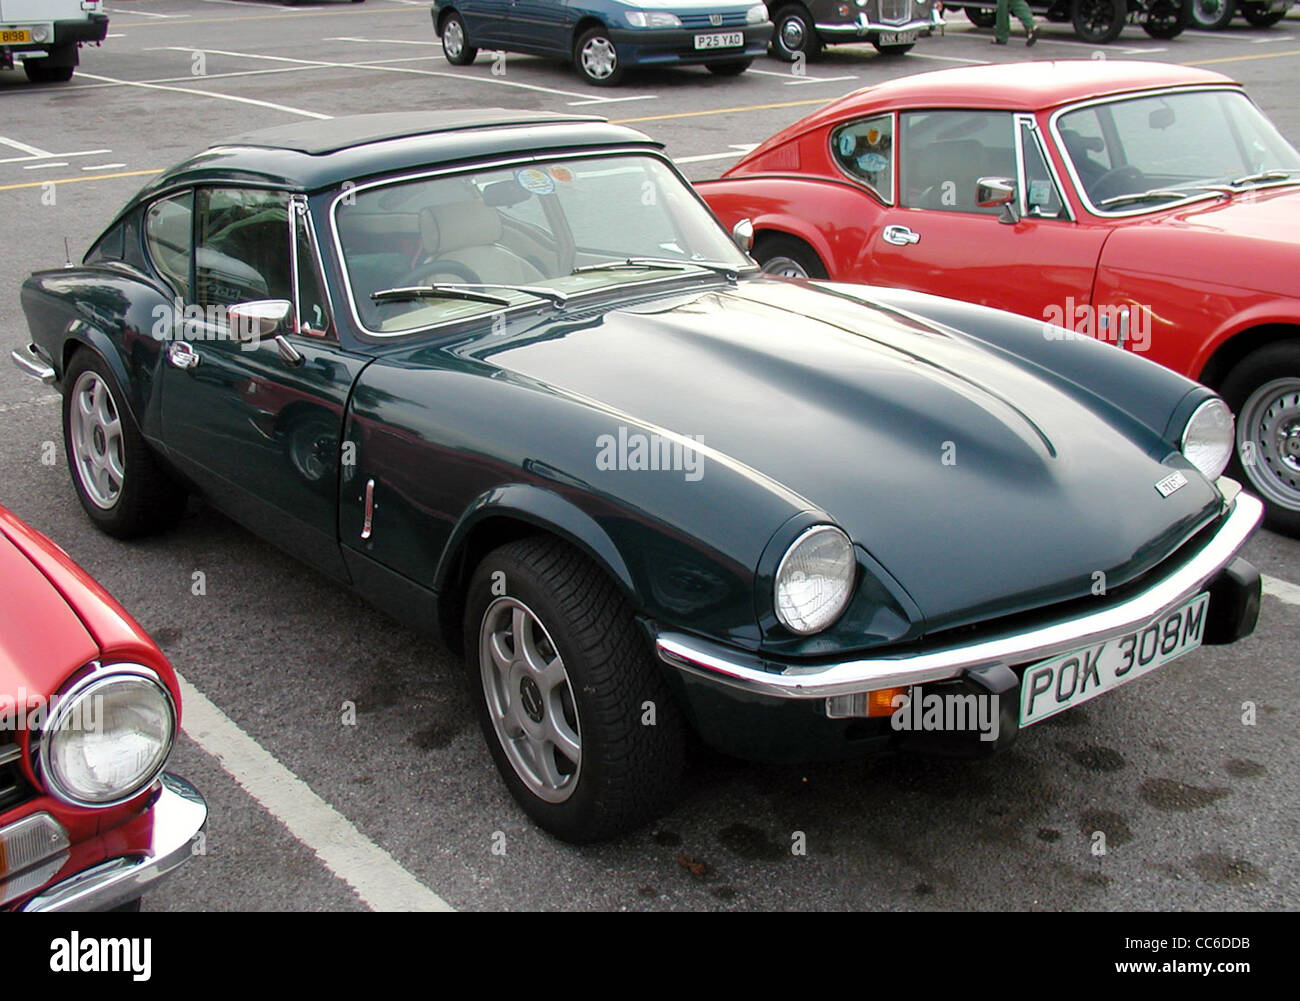 1974 Triumph GT6 Coupé at The Great West Road Run rally, Aust, Bristol, England. - Stock Image